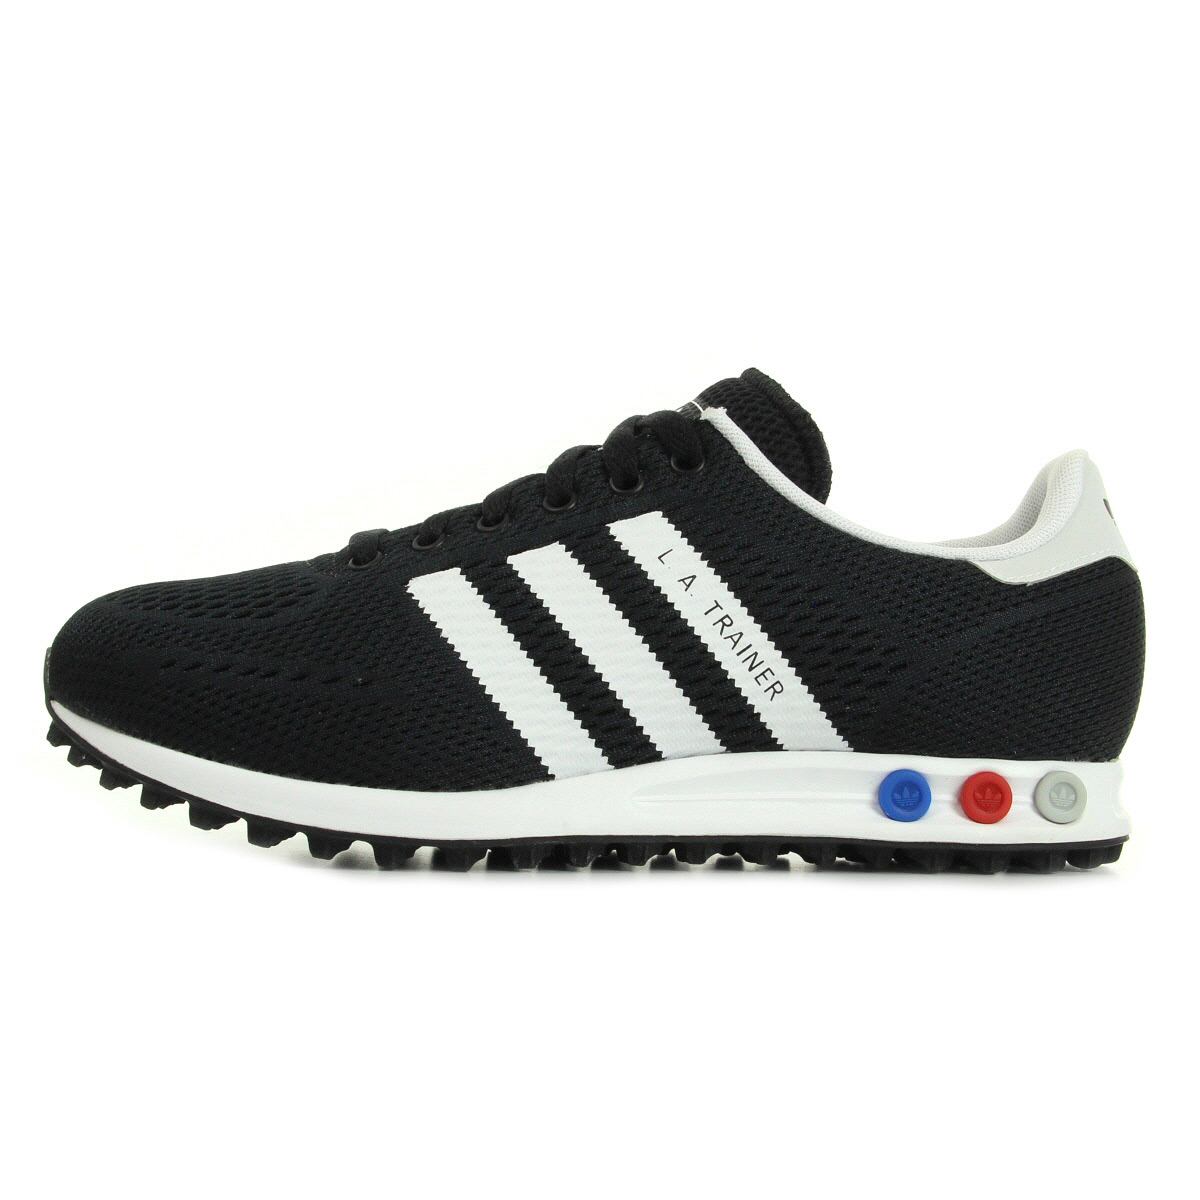 adidas La Trainer Em S79296, Baskets mode